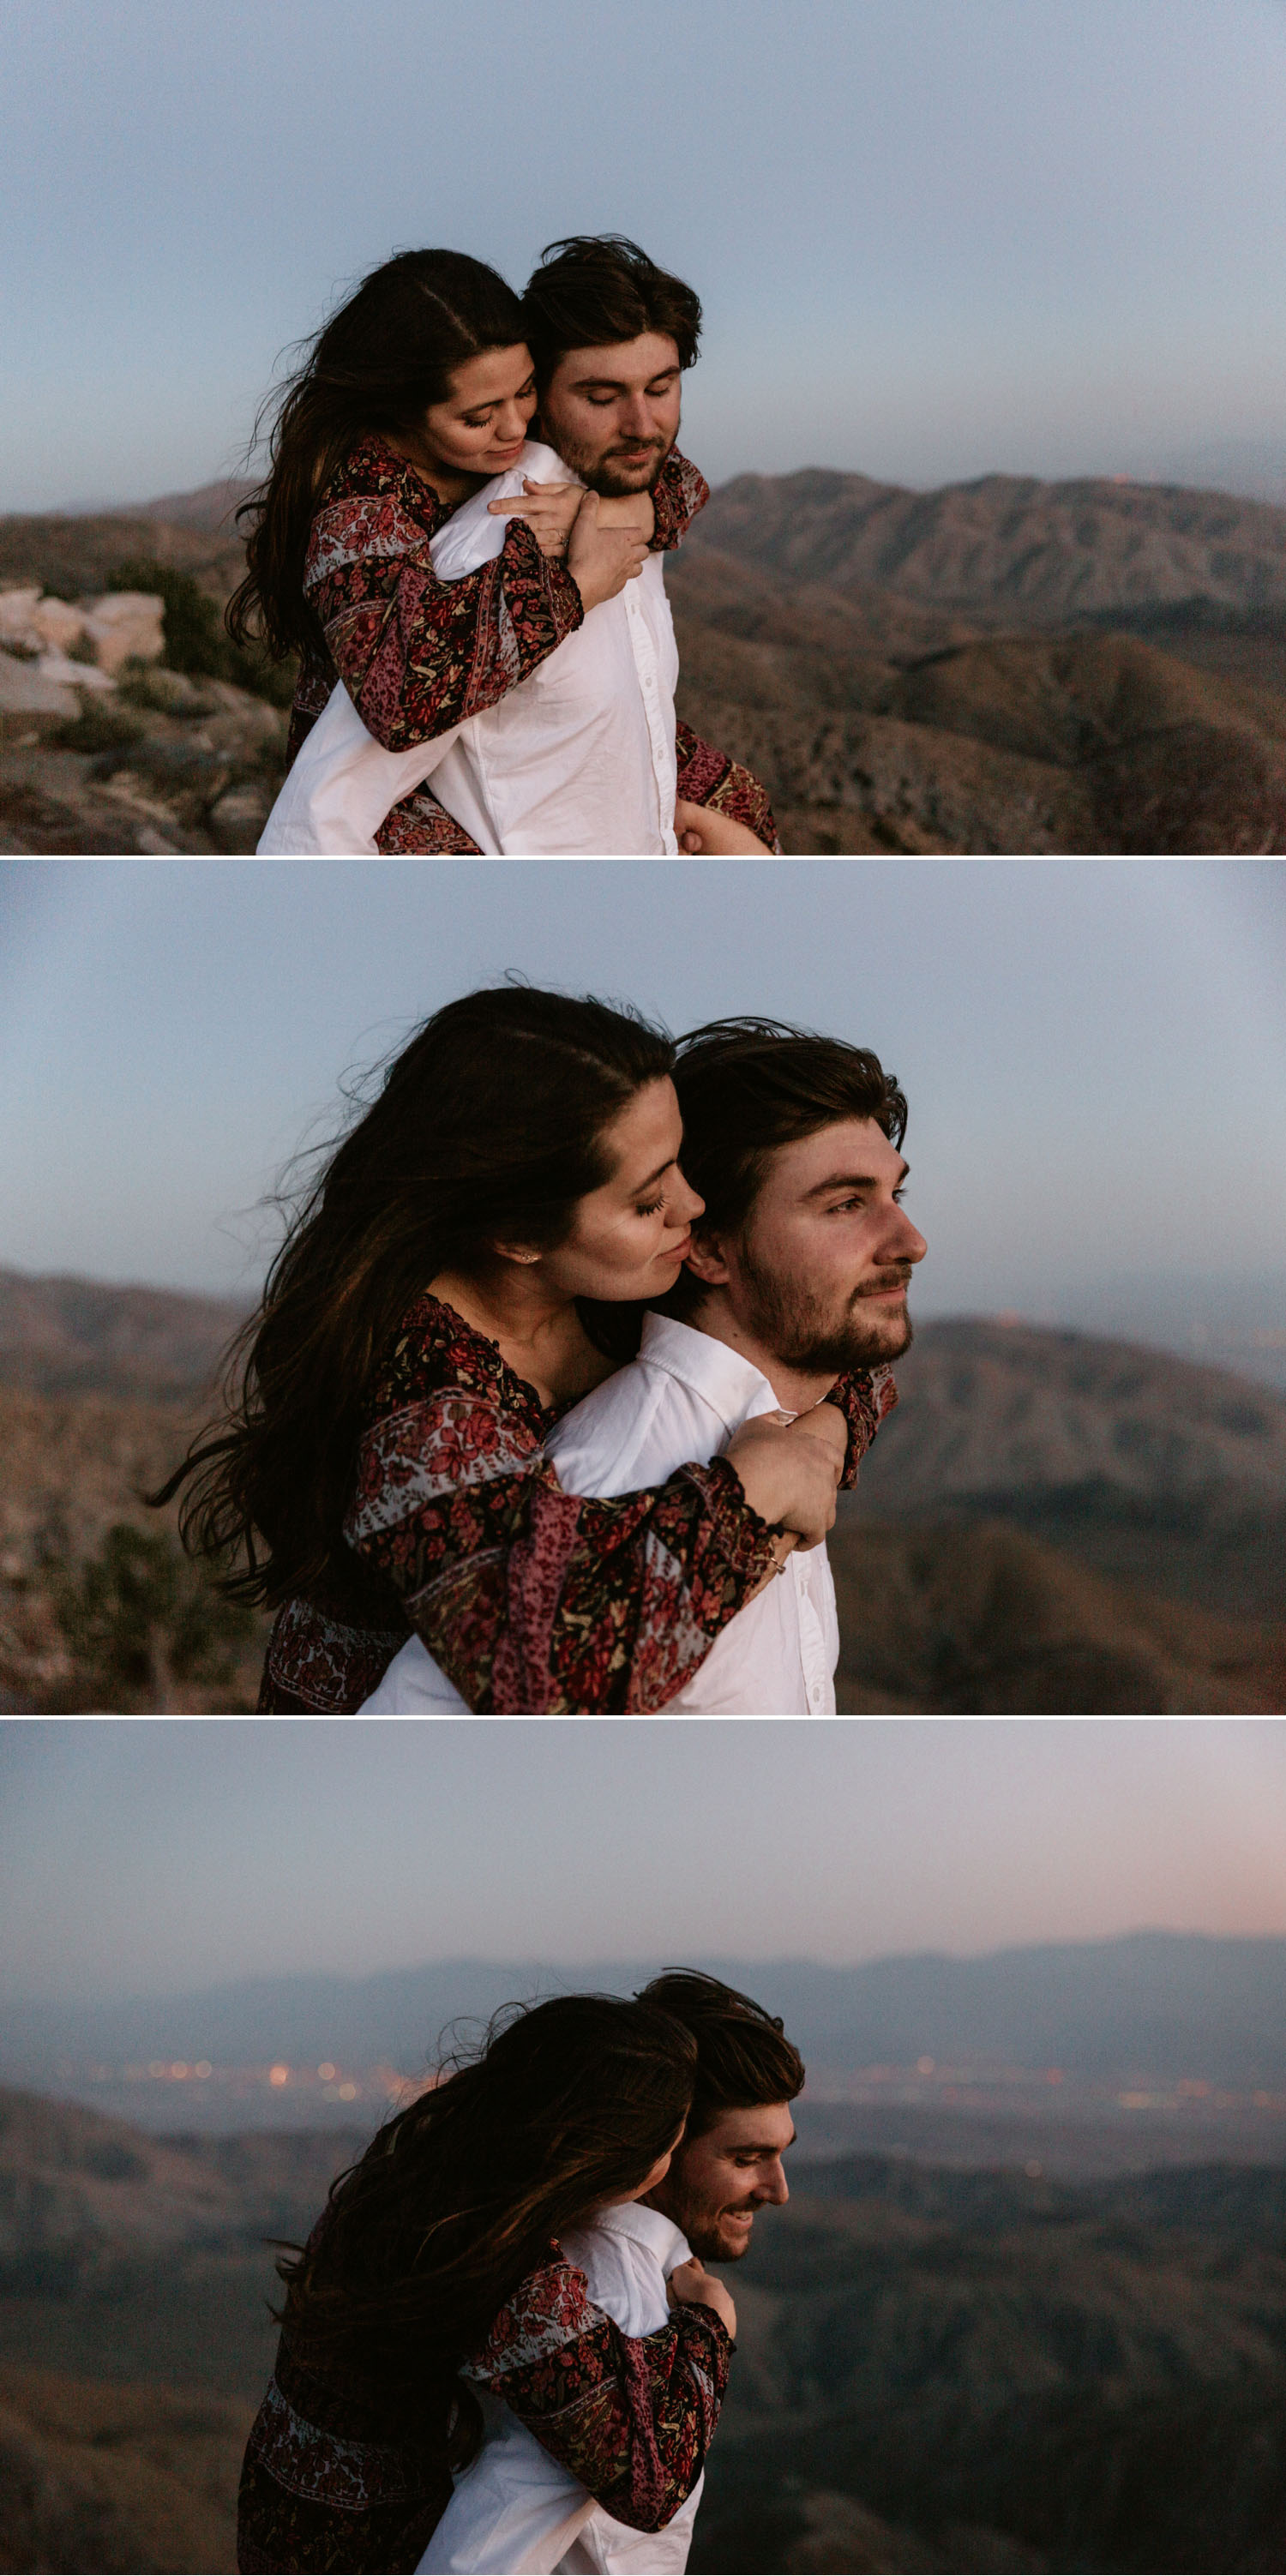 Olivia and Ricky's Golden Desert engagement in Joshua Tree by San Diego photographer Paige Nelson